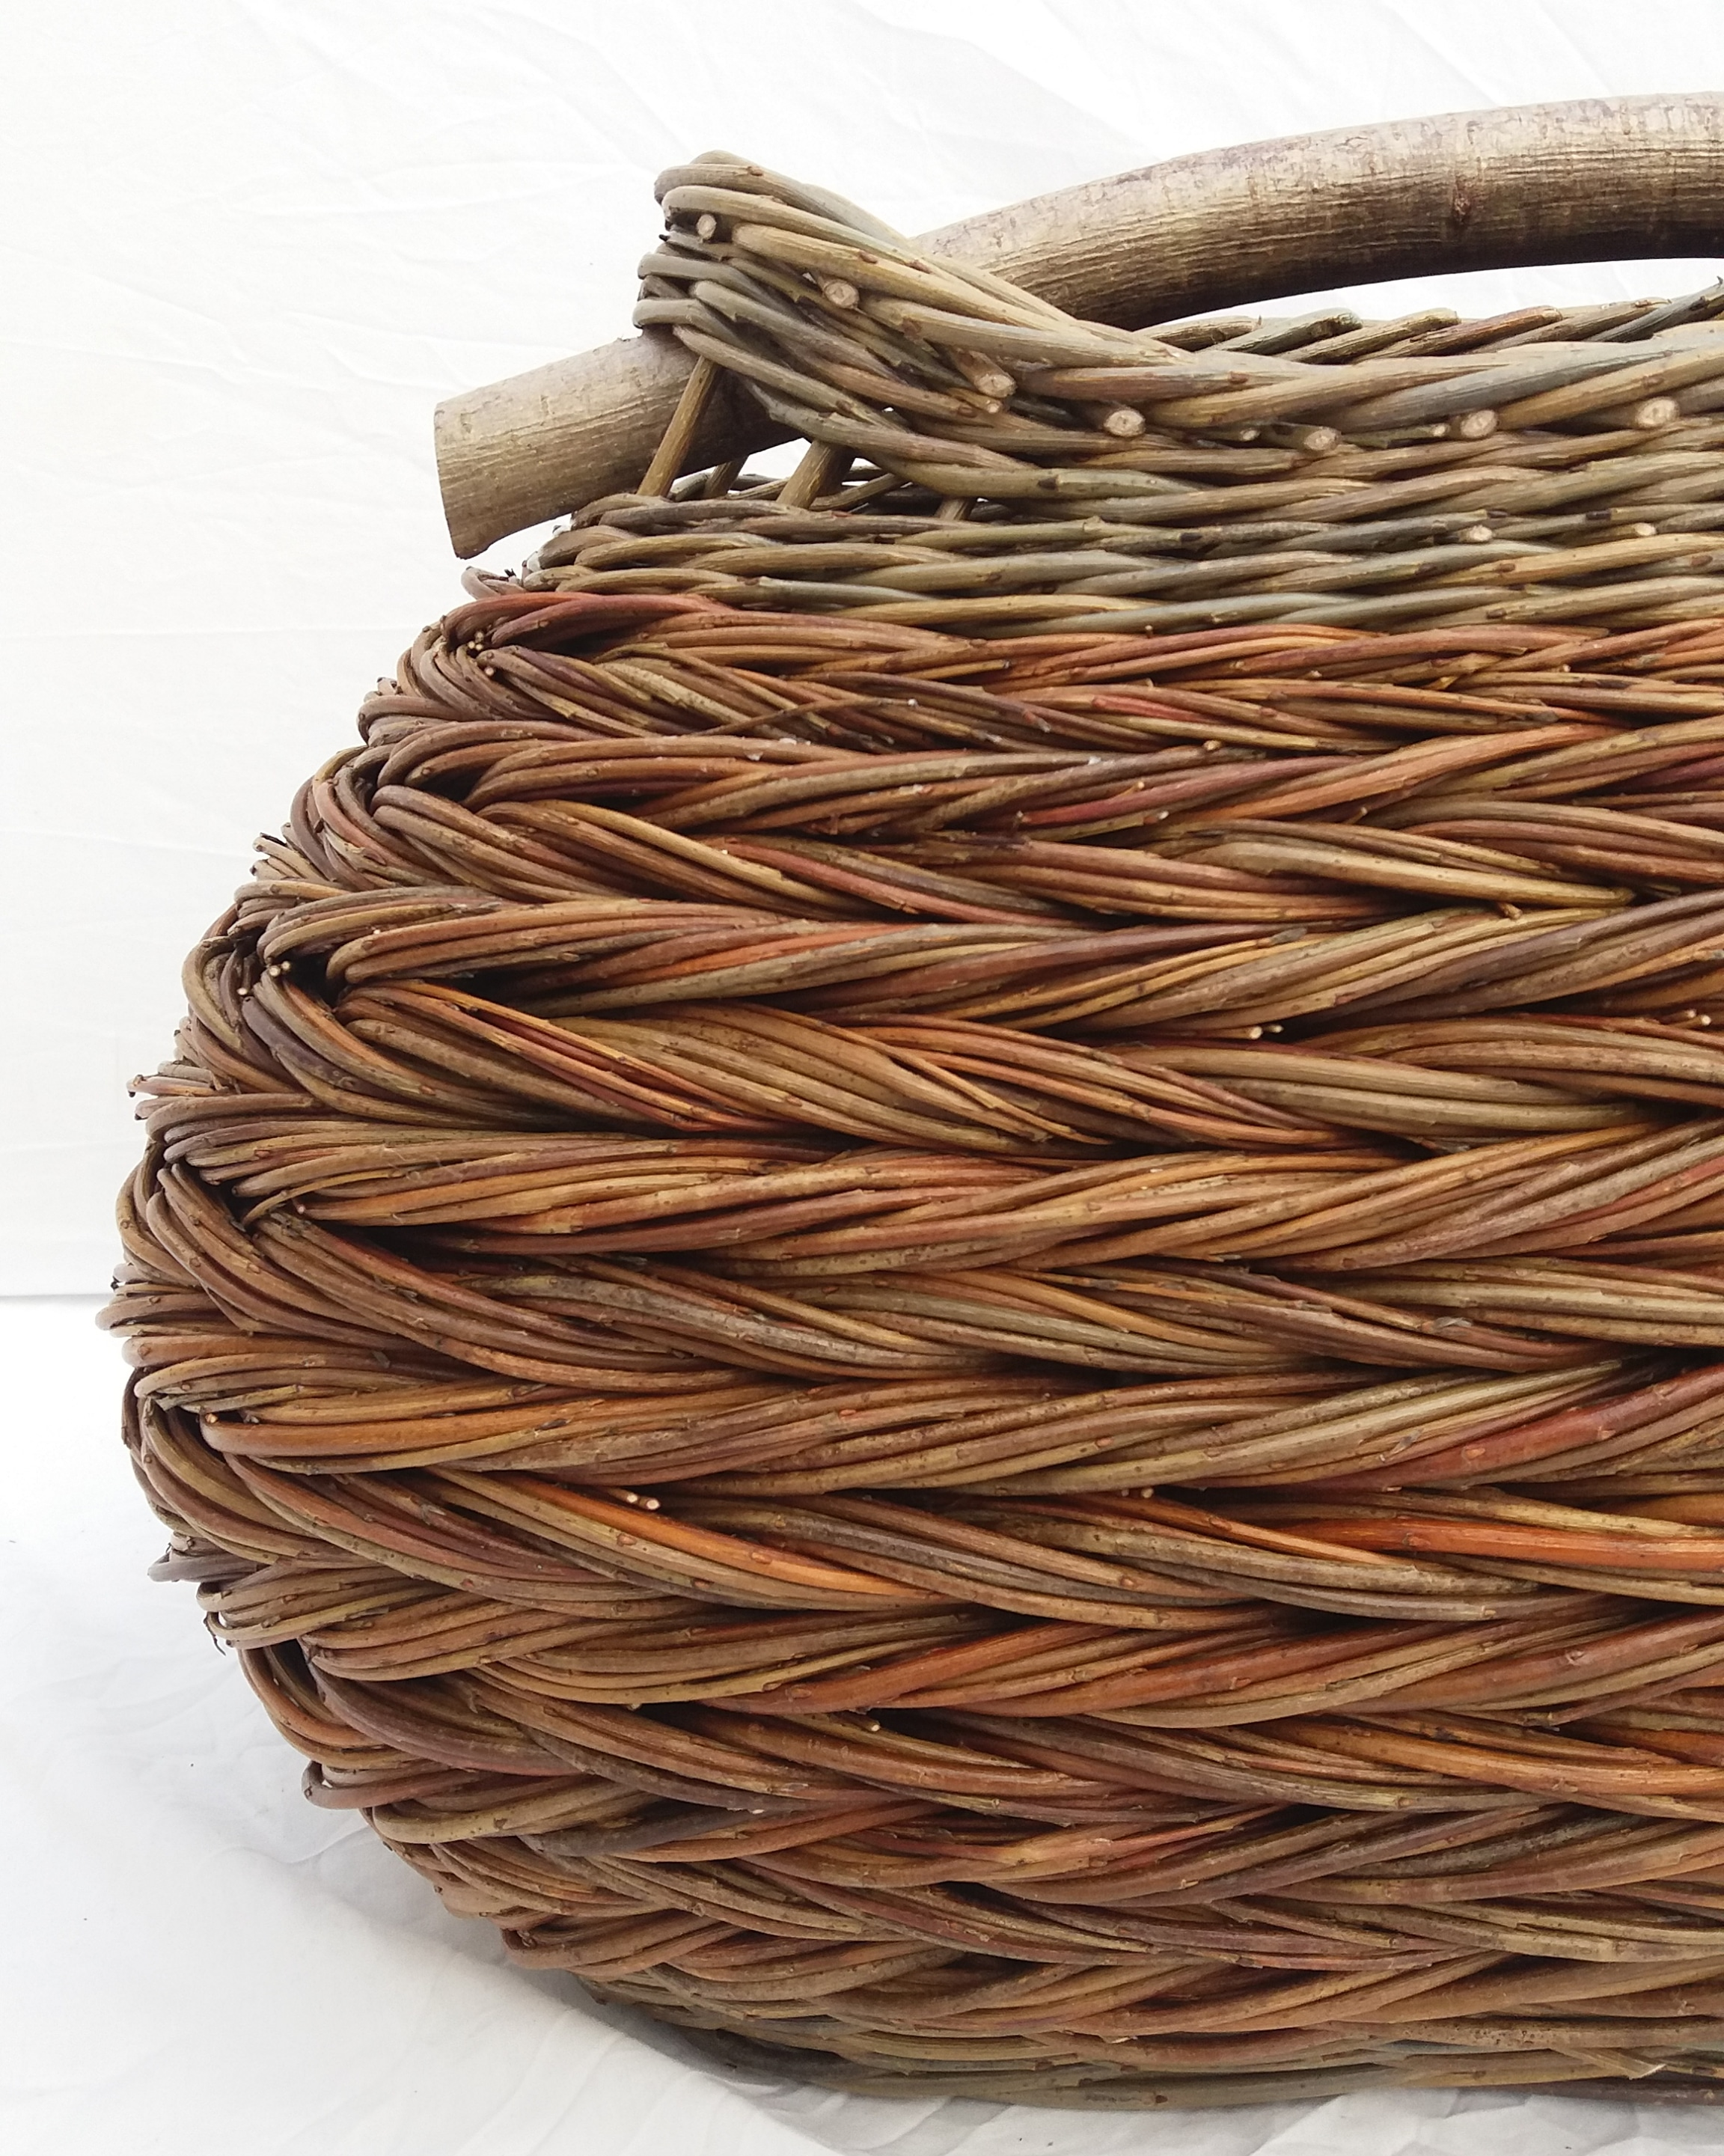 Contemporary Baskets for Houghton Hall , The Stables. Norfolk By Design 2019